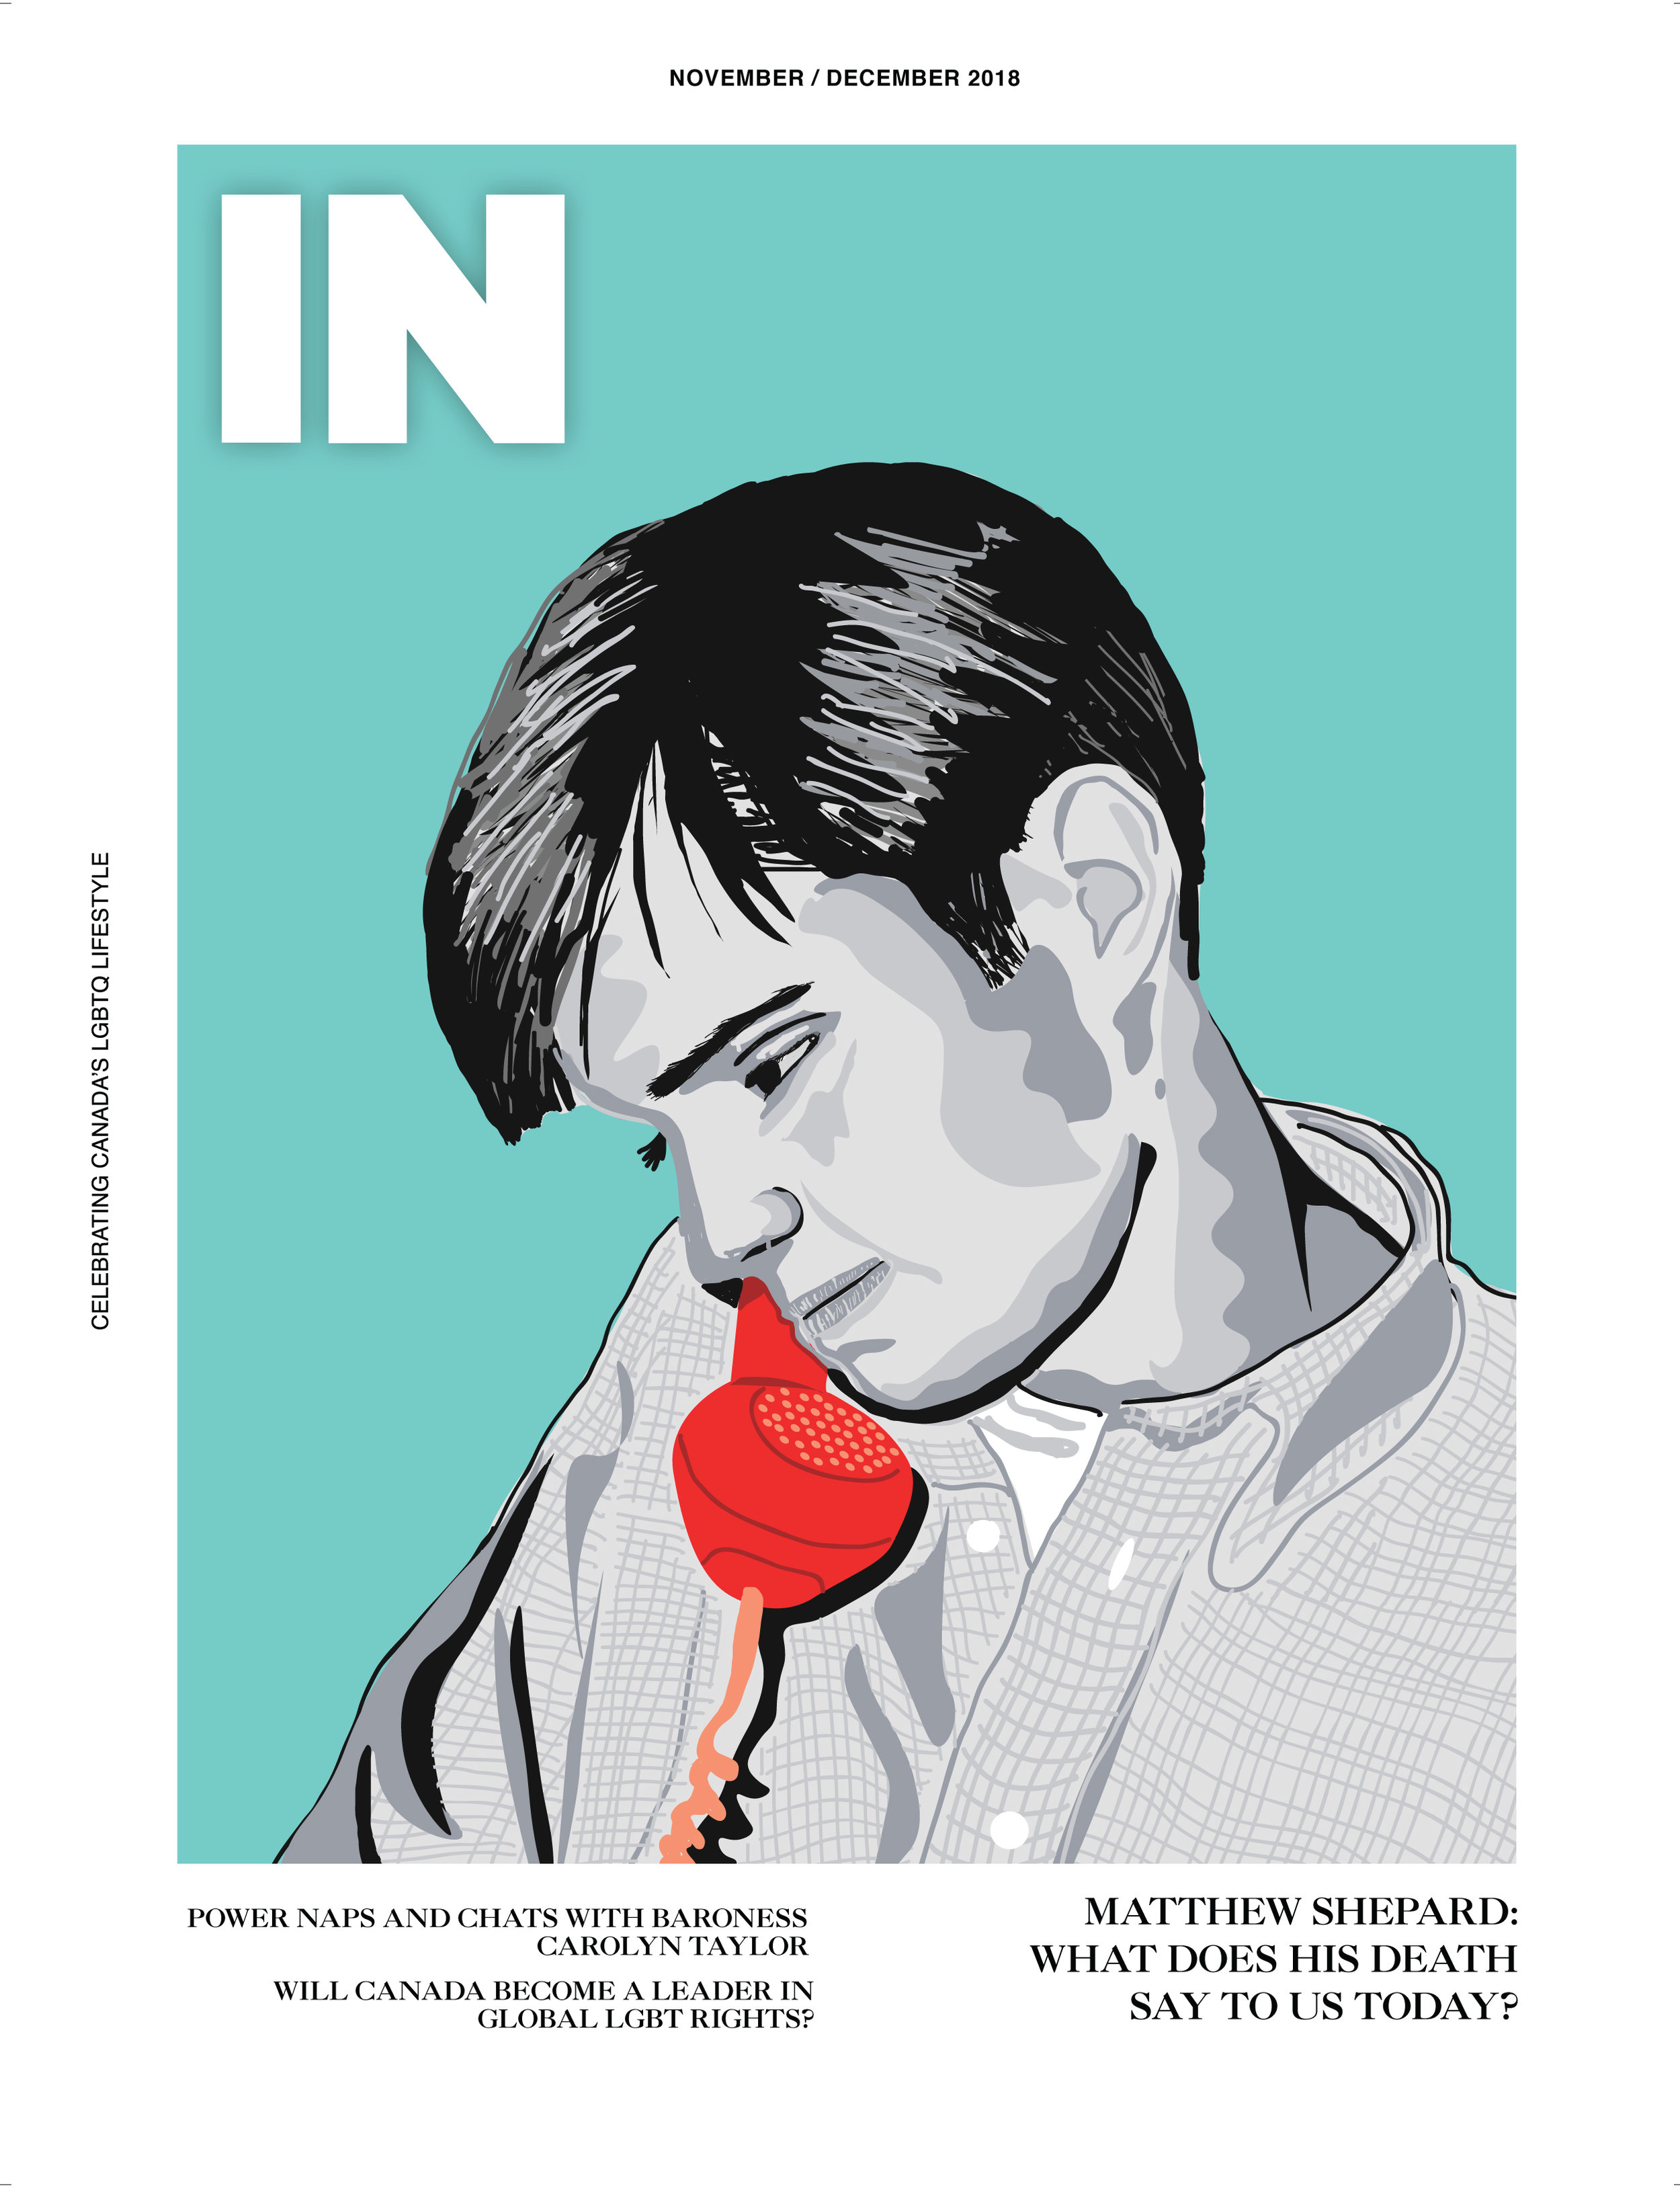 NOVEMBER 2018    I was contacted to design the cover treatment of Matthew Shepard for IN Magazines November 2018 issue.  You can see more info here:  http://inmagazine.ca/issue-archive s